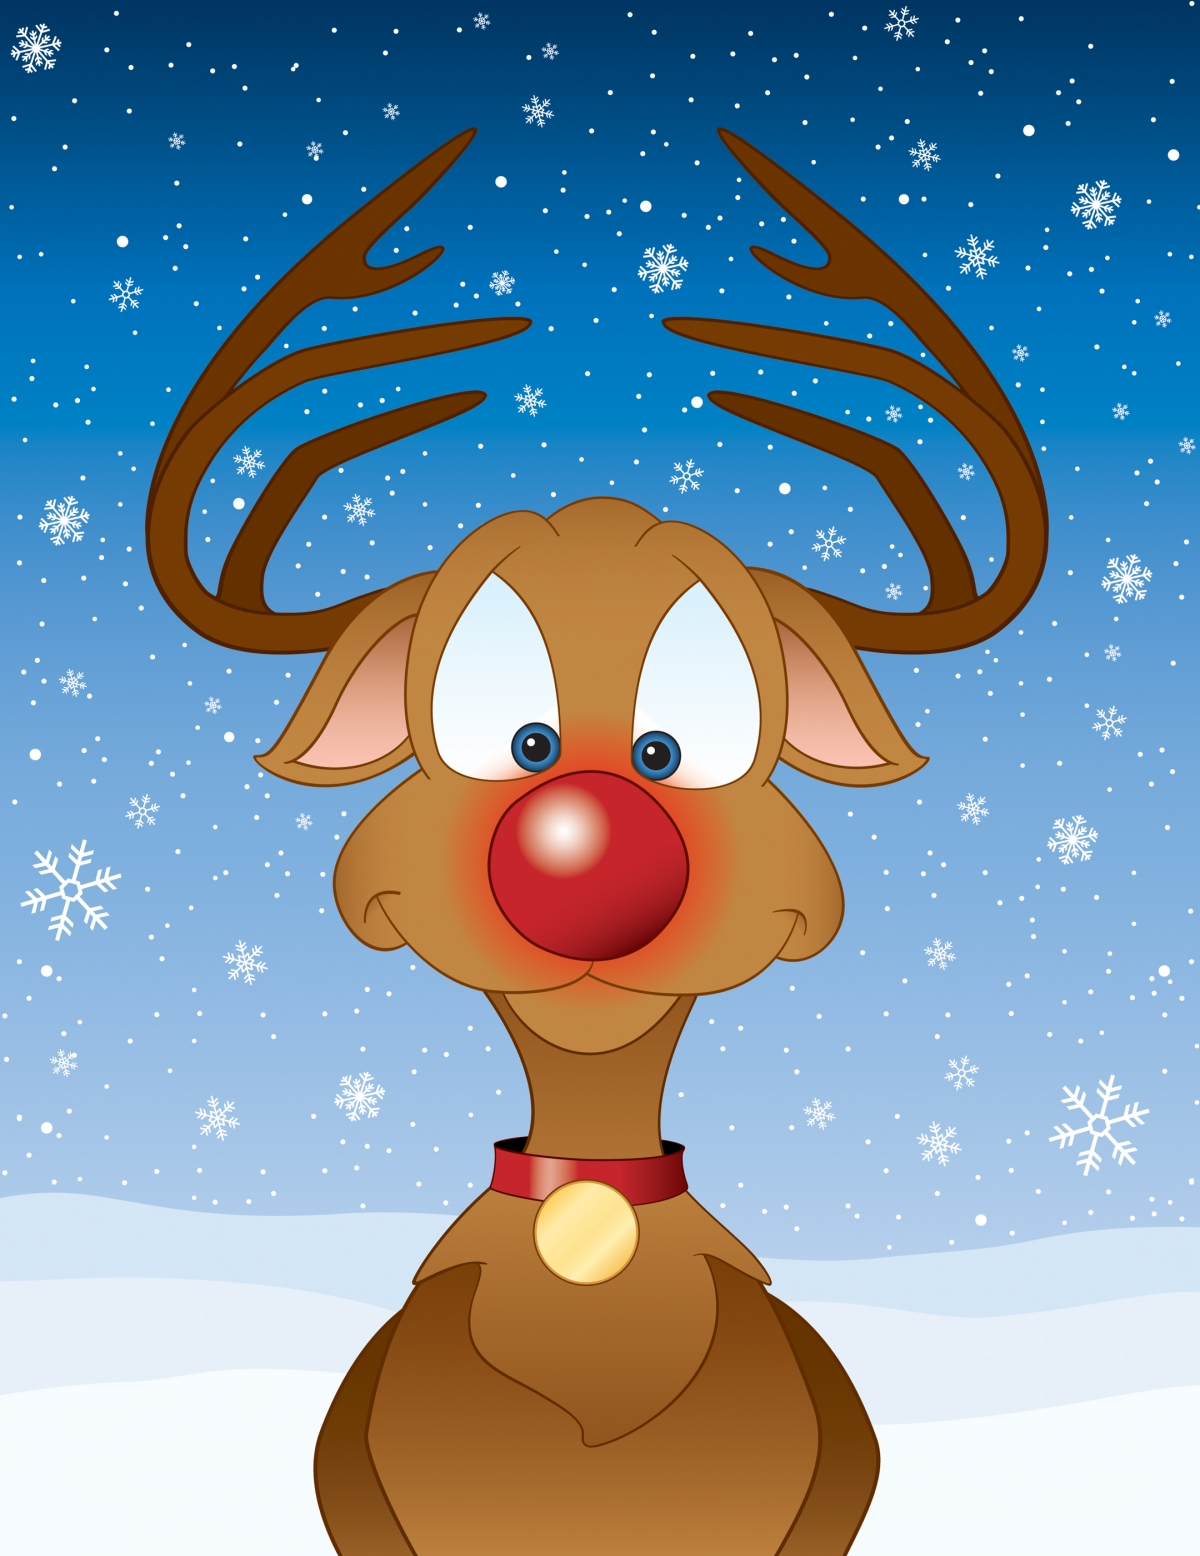 Tinkle Bells, the Parasitic Poop Twig, Rudolph